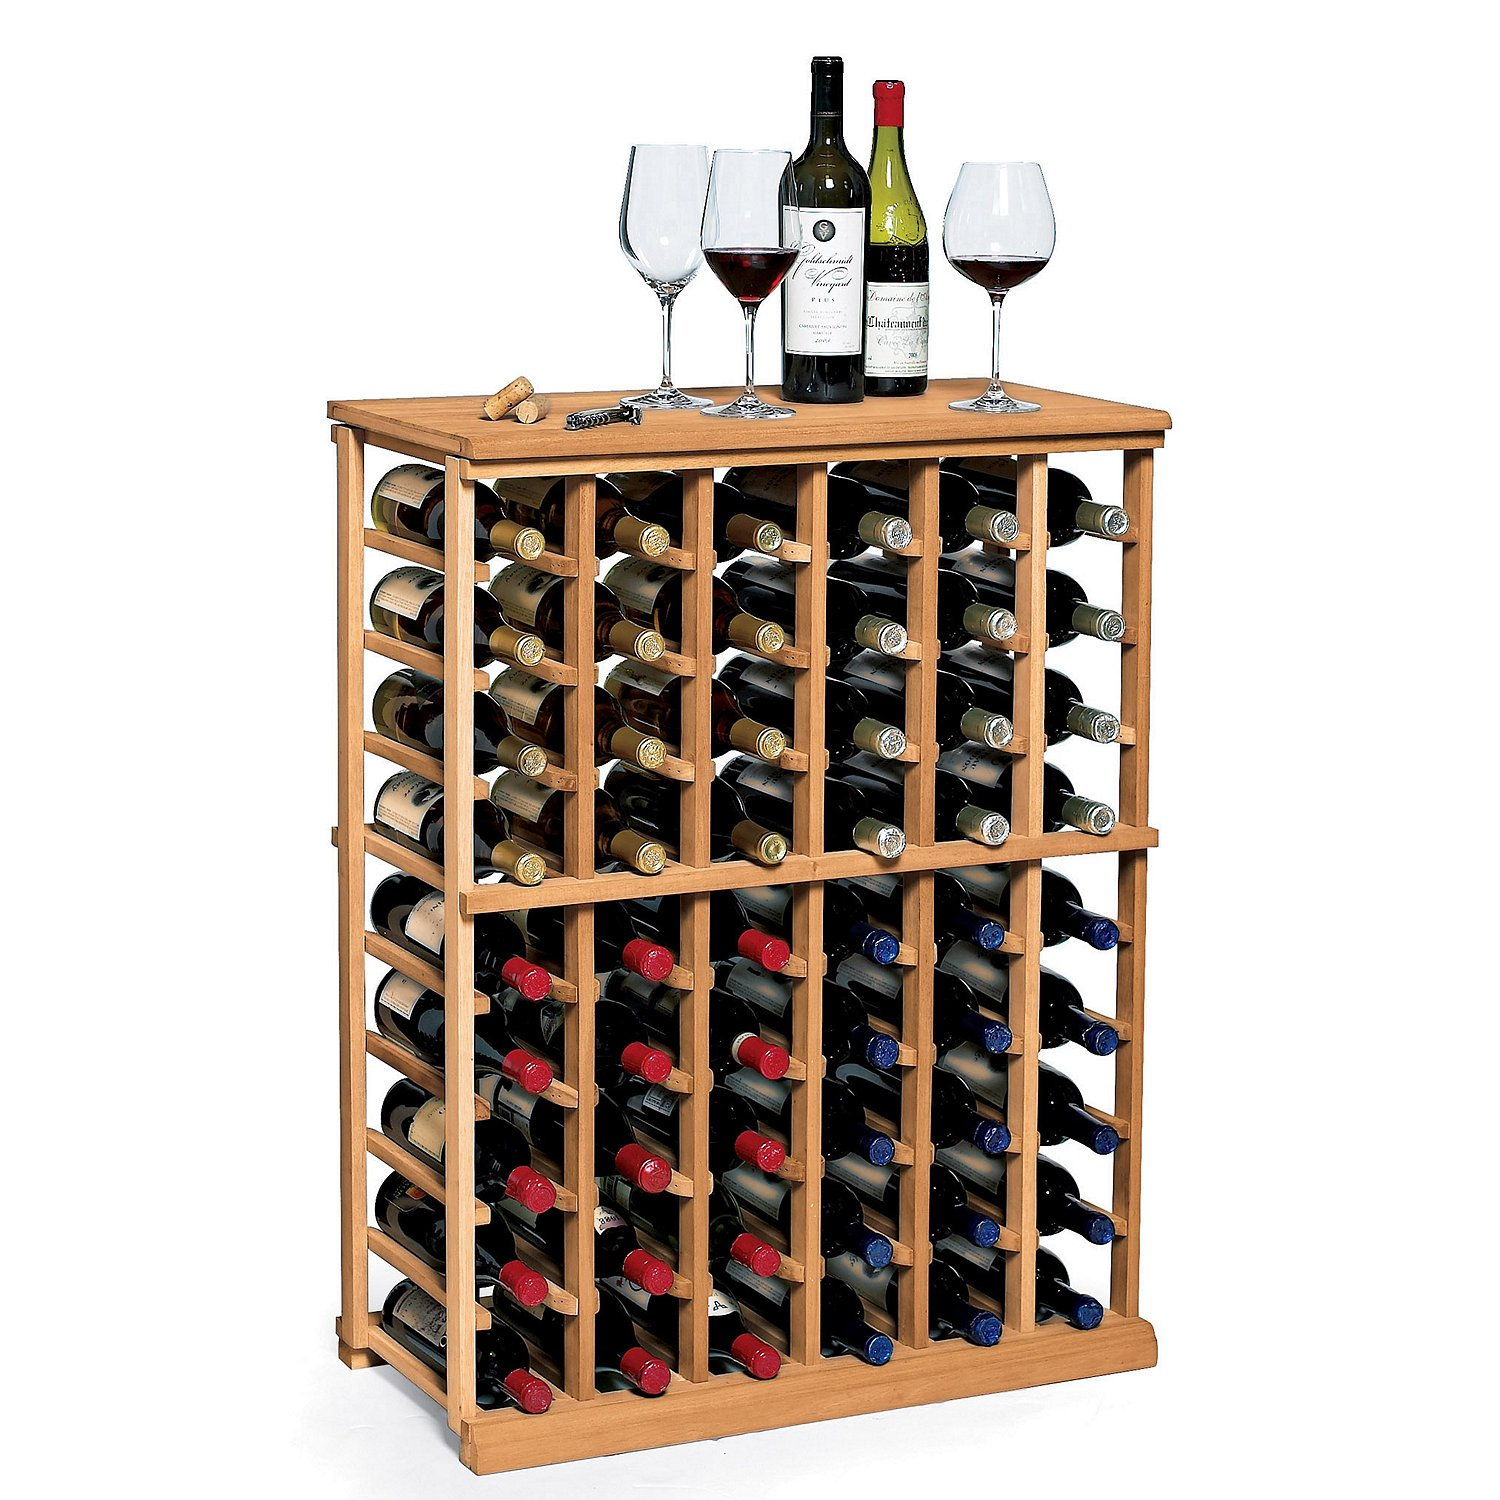 N'FINITY Wine Rack Kit - 6 Column Half Height -Natural Finish - Solid Mahogany by N'FINITY